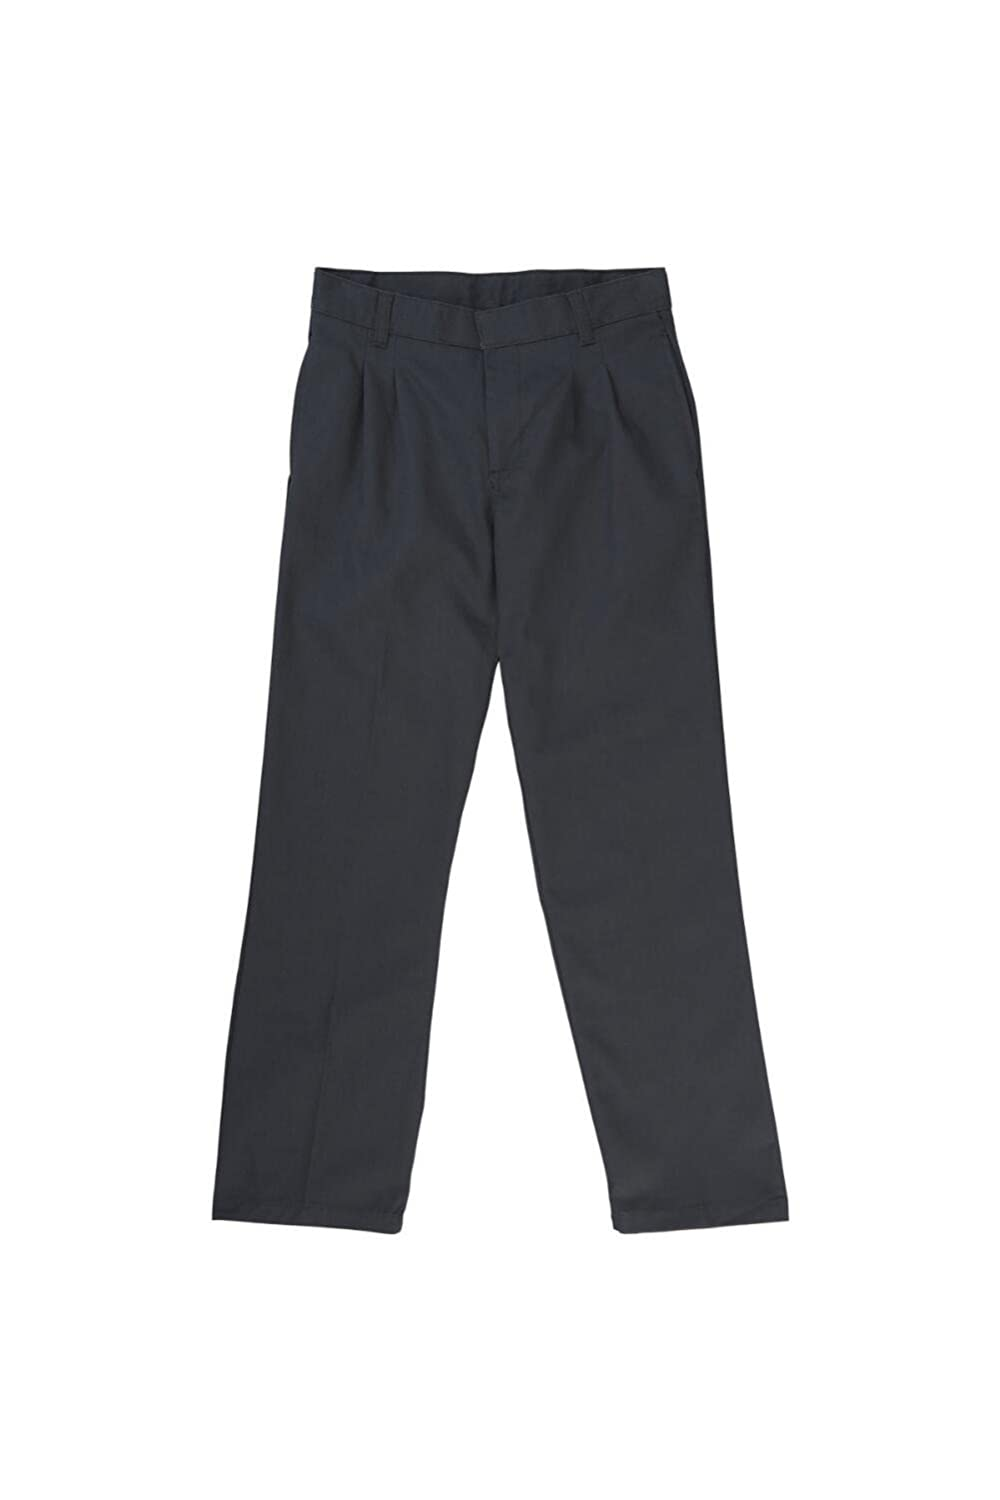 French Toast Boys Pleated Double Knee Pant with Adjustable Waist